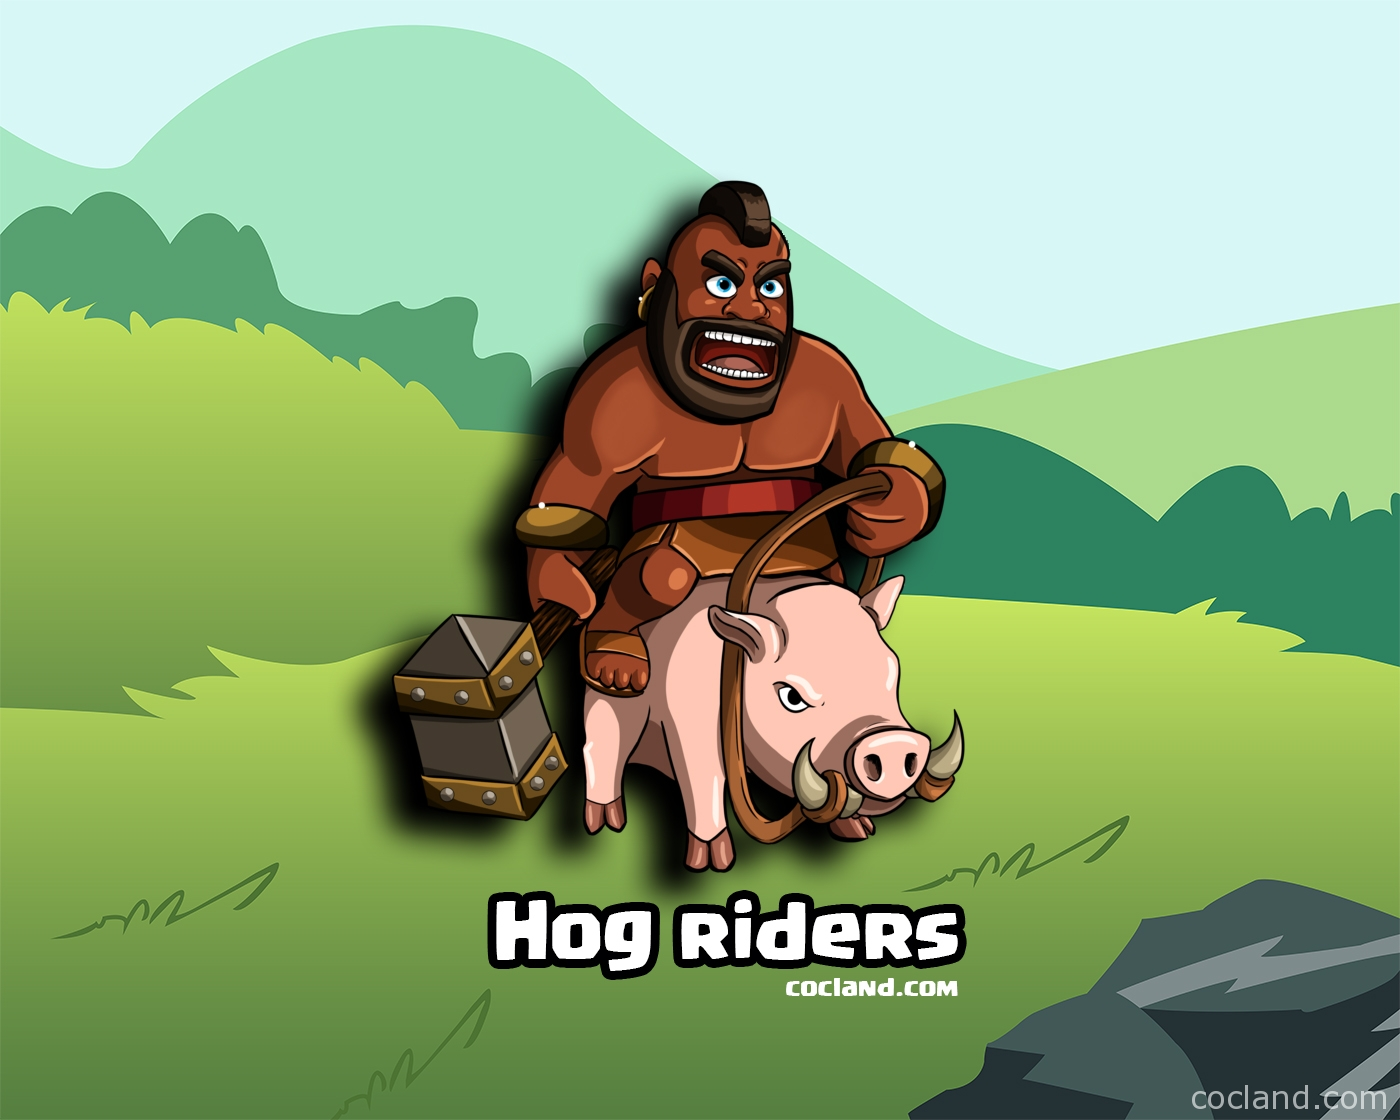 Clash of Clans Hog Rider